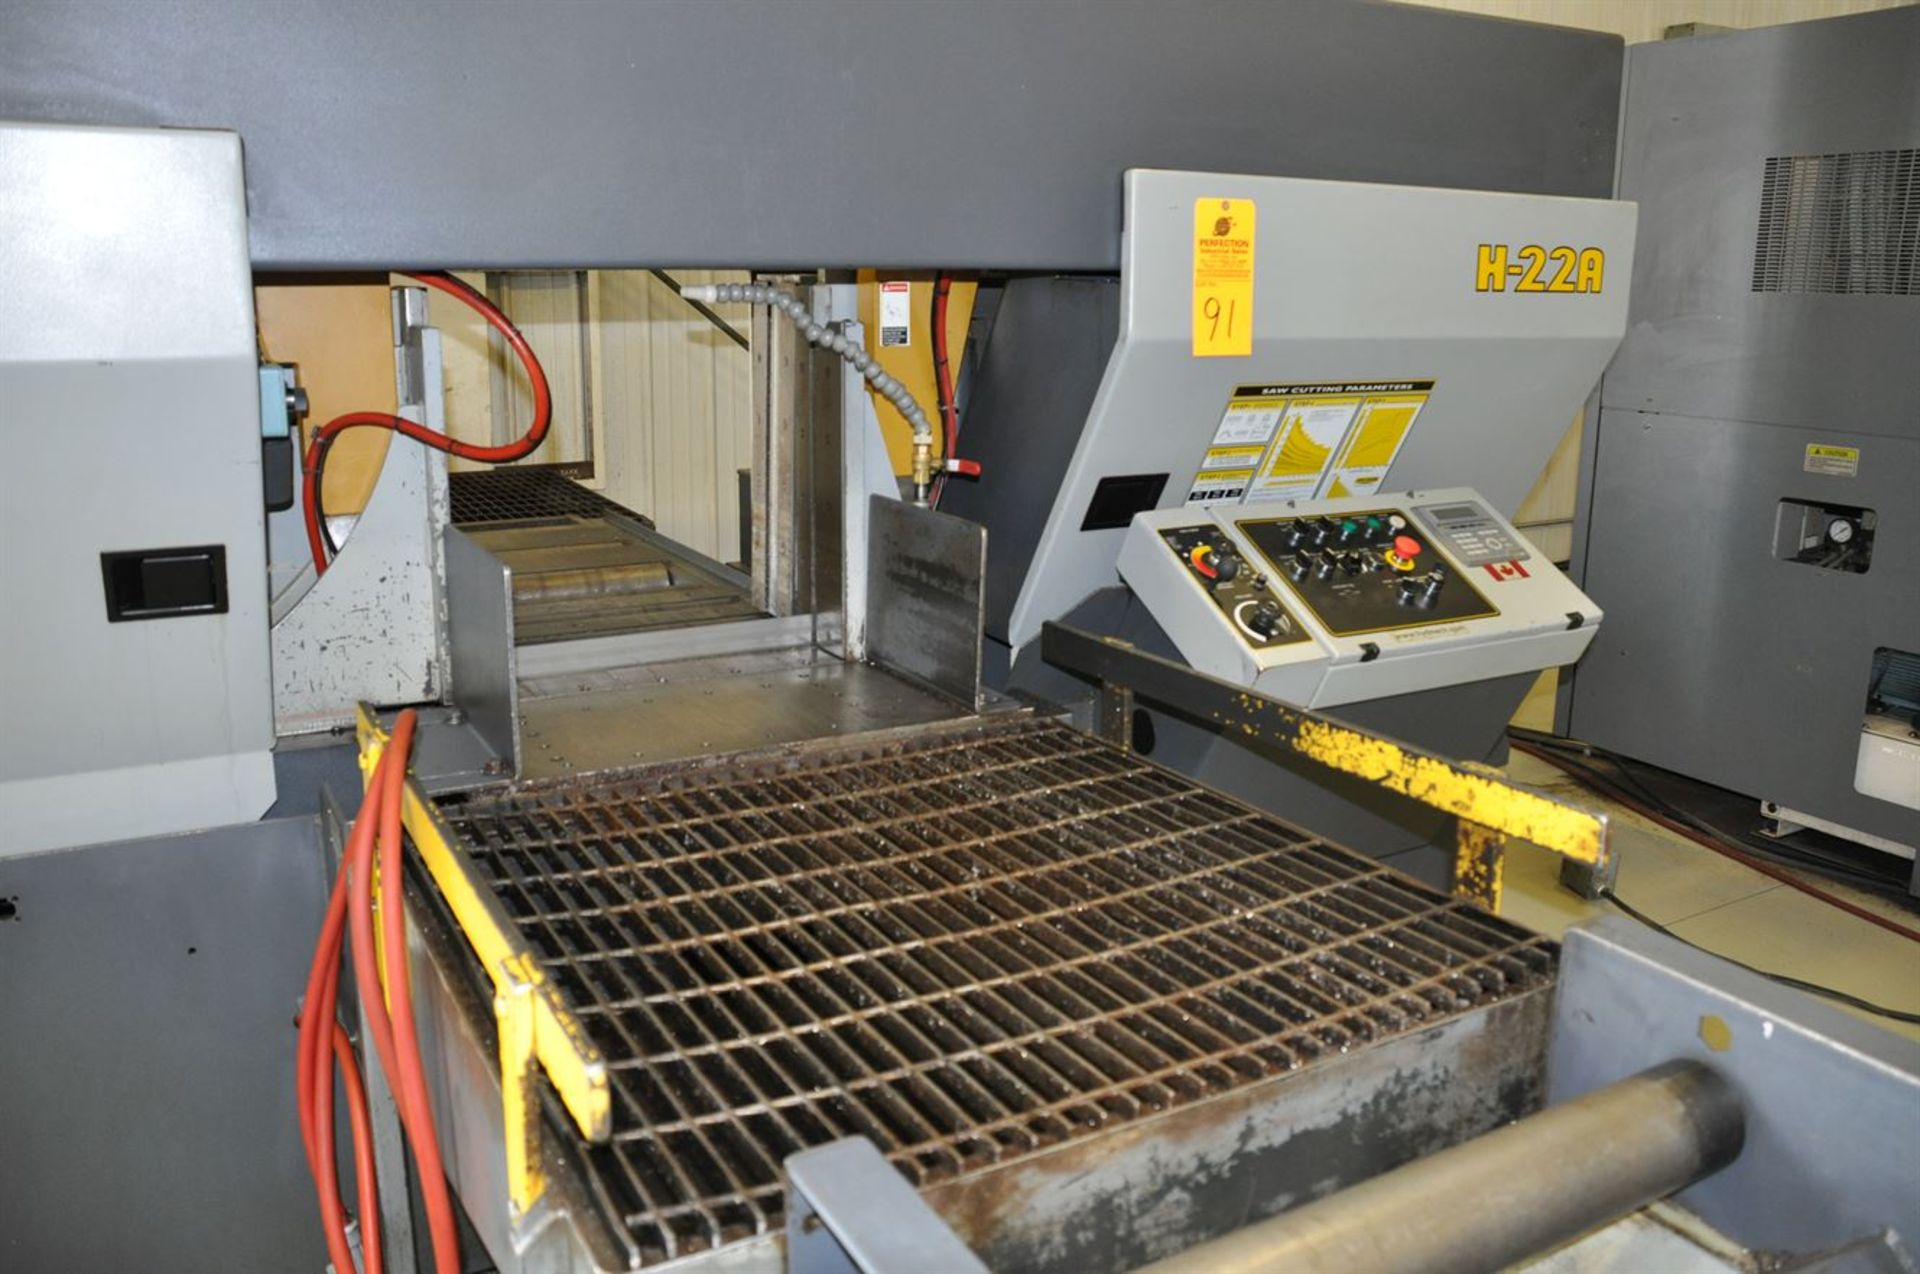 """2012 HYD-MECH H-22A Automatic Horizontal Bandsaw, s/n C0312364S, w/ 22""""x 22"""" Cap., 10 hp, Auto - Image 2 of 4"""